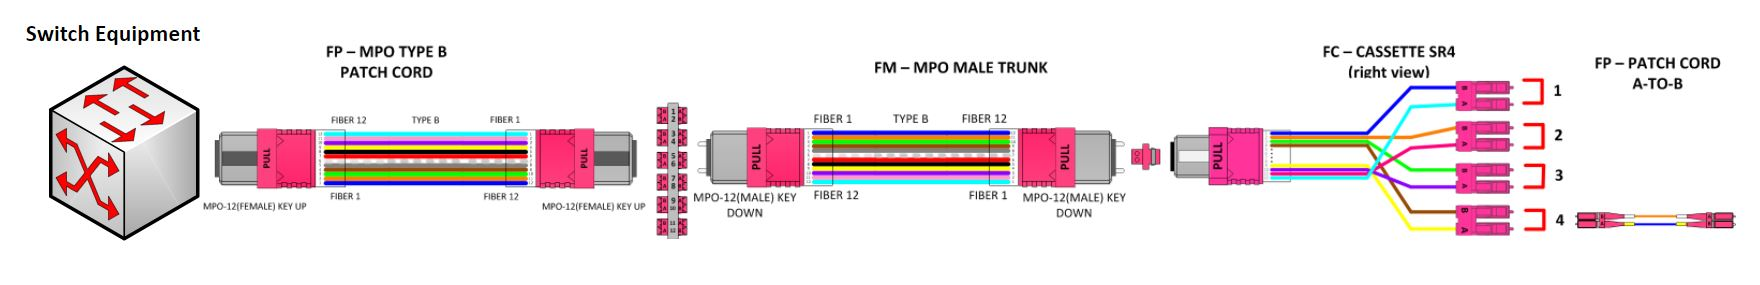 4 Basic How-To Rules of Fiber Polarity